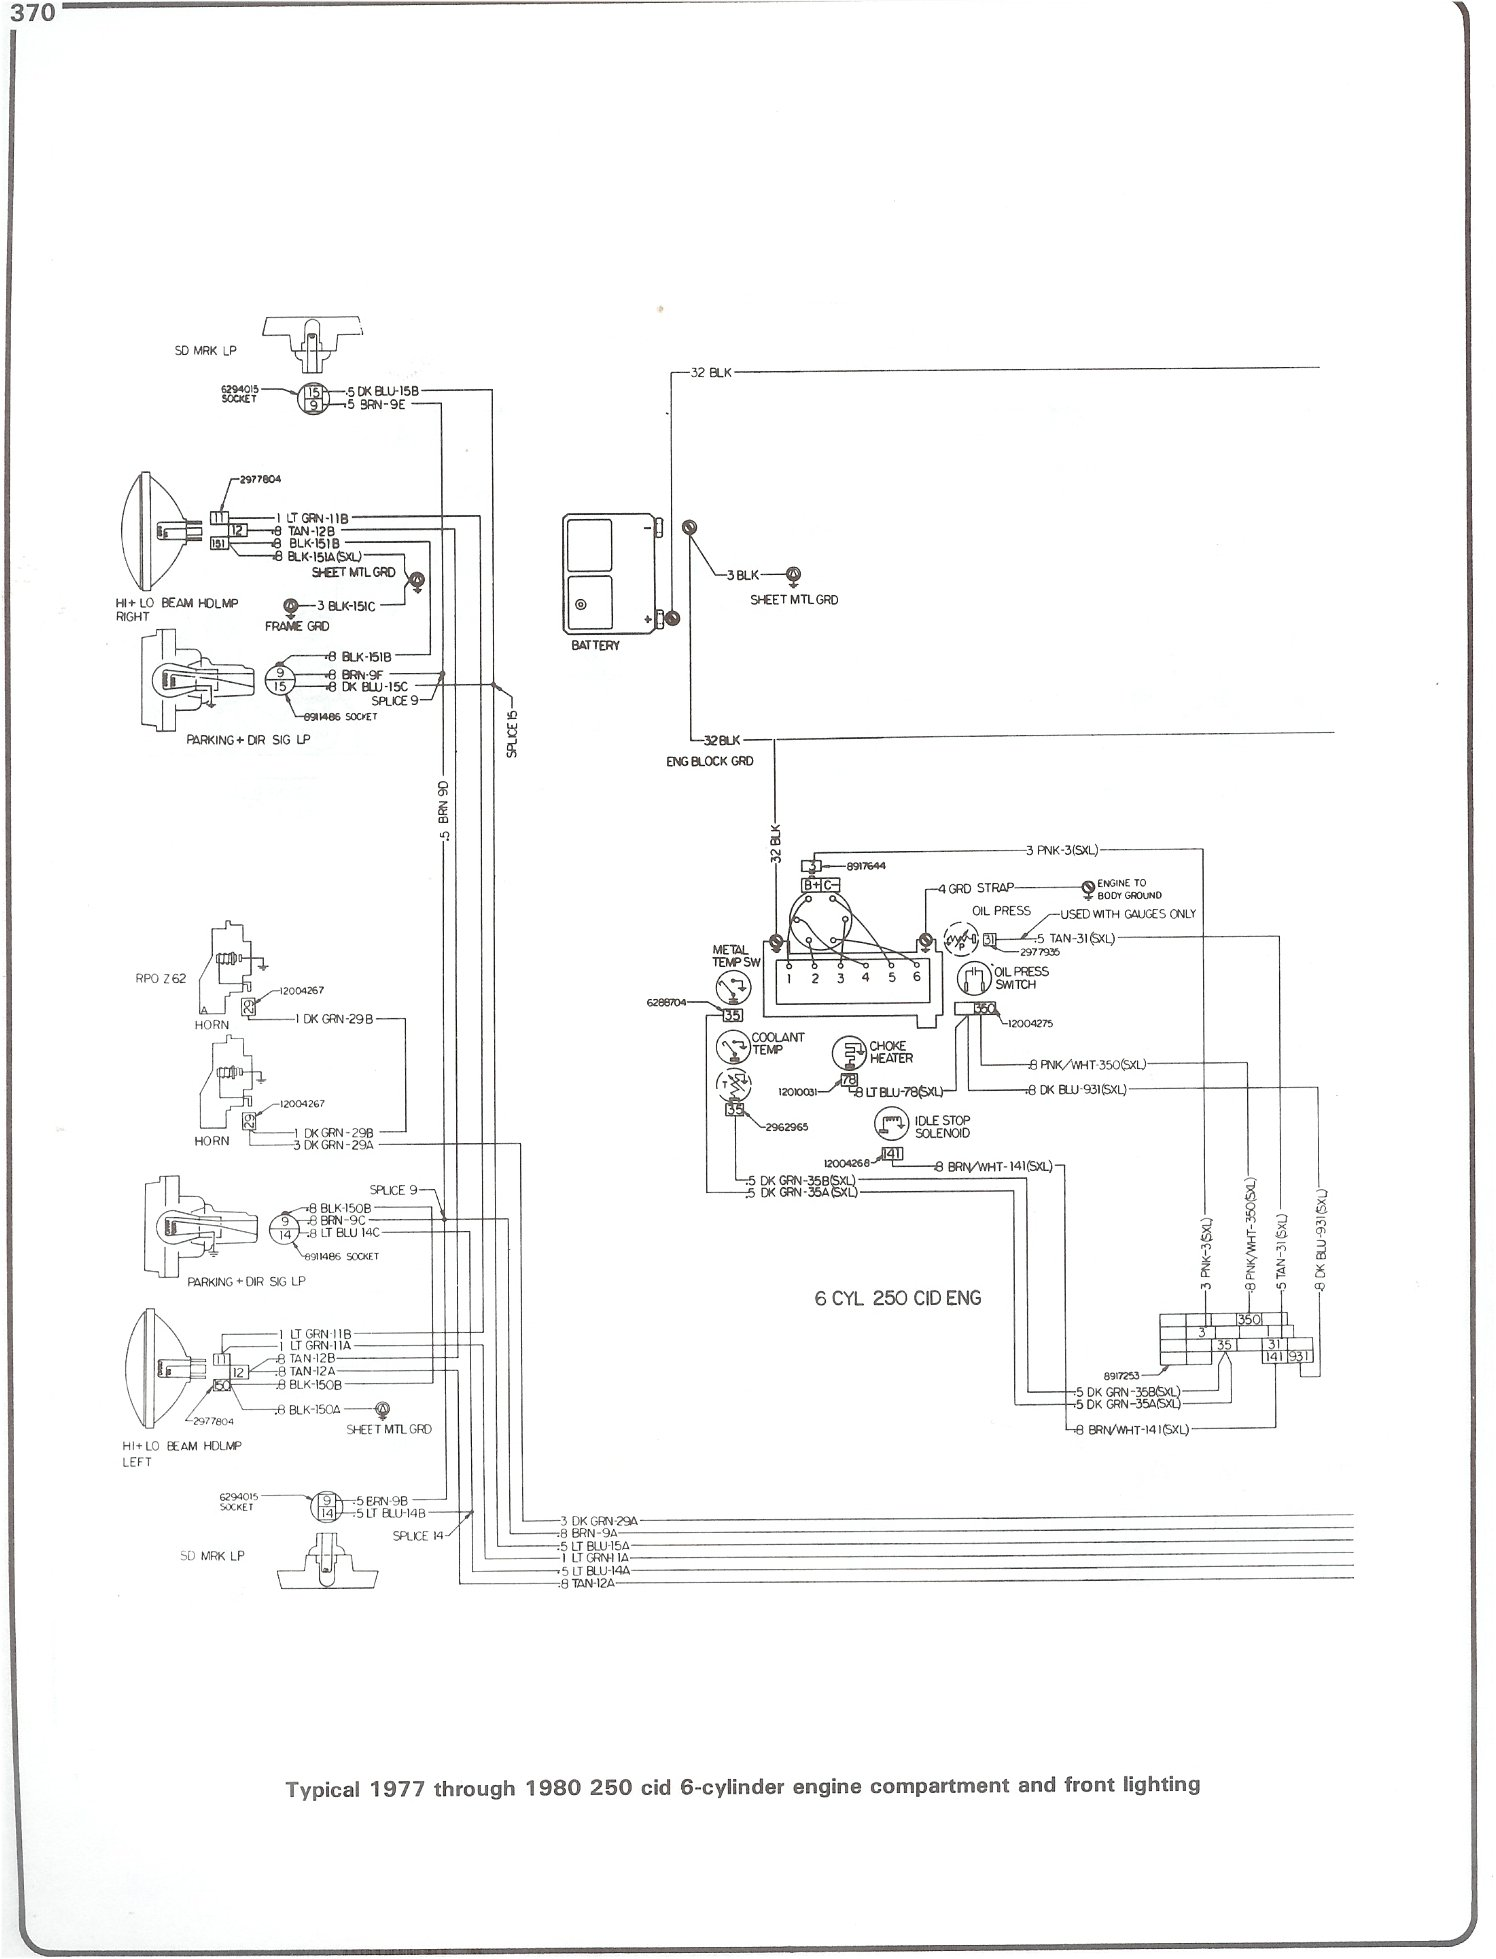 77 C 10 Wiring Diagrams Schematic 2019 Tstatccprh01 B Diagram 1985 Chevrolet C10 33